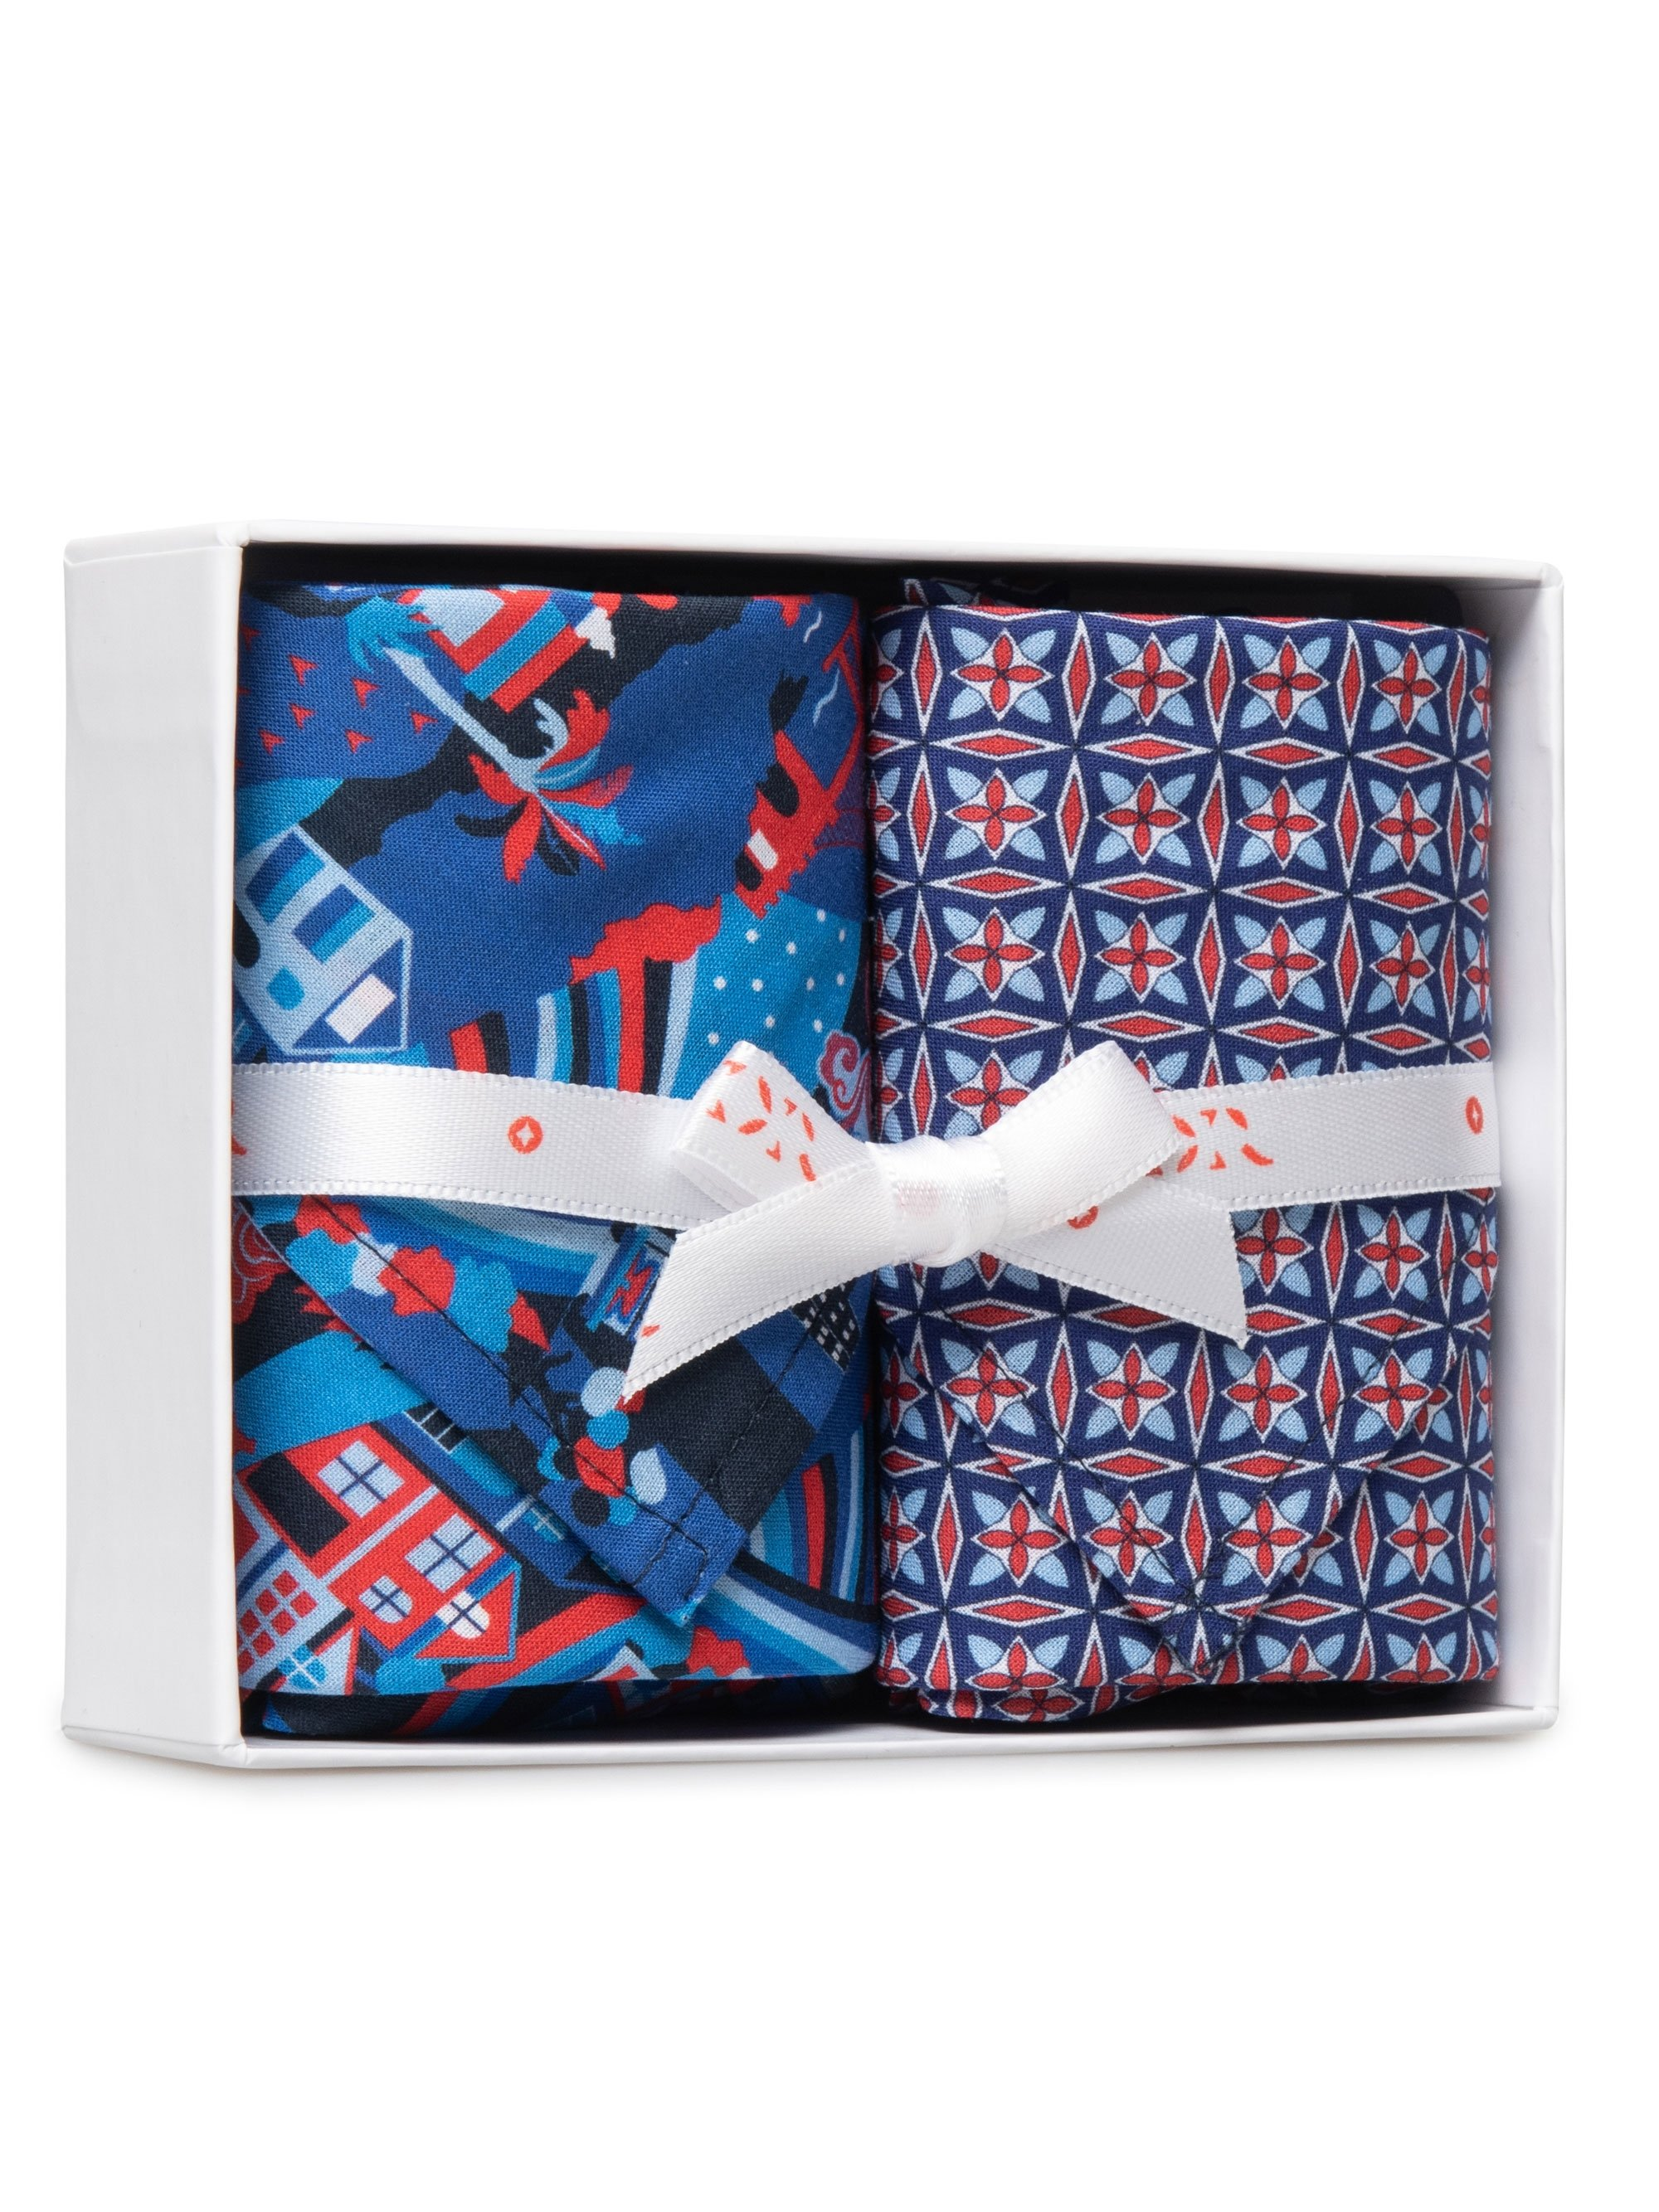 Handkerchief Set Pack 151 Ledbury 19 Red & Ledbury 21 Red